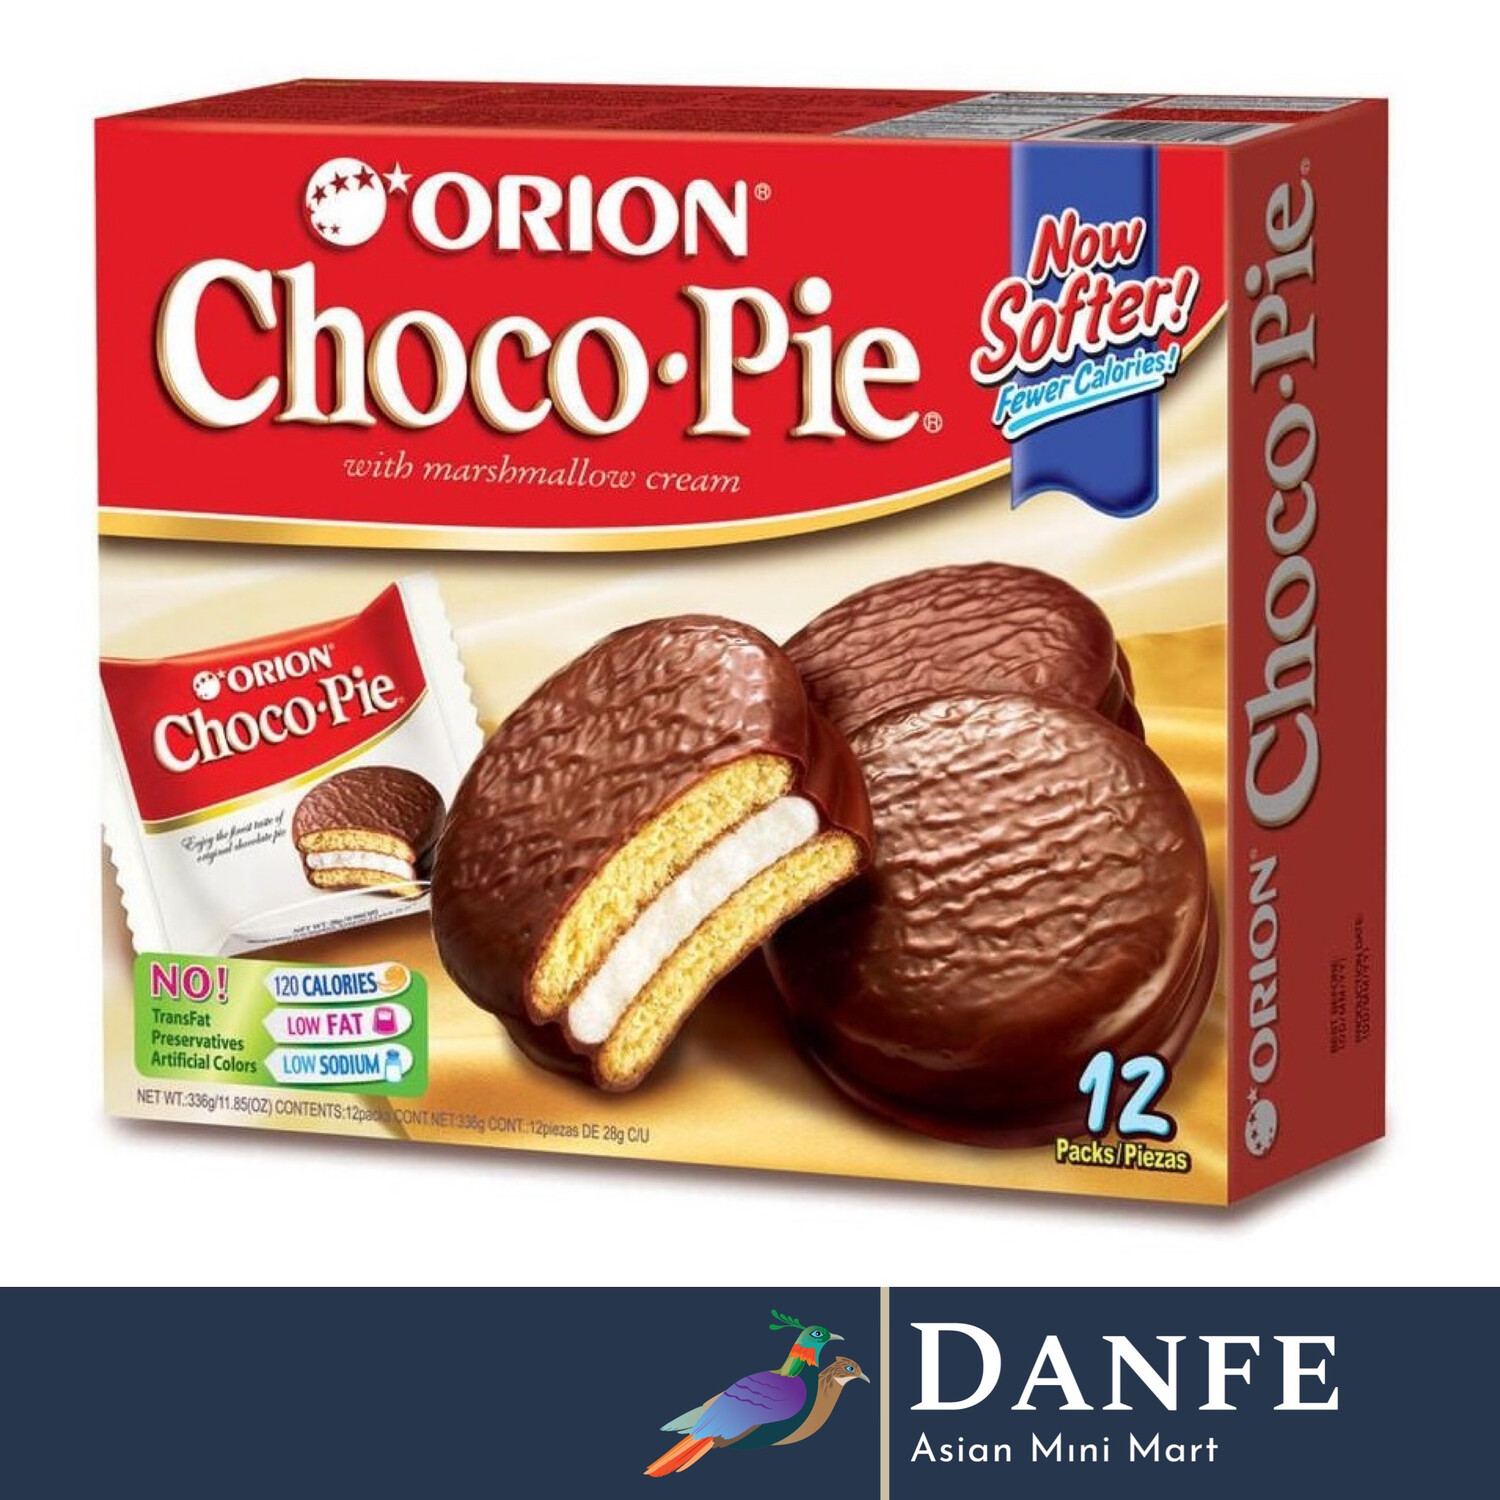 Orion Choco Pie 12 Pack